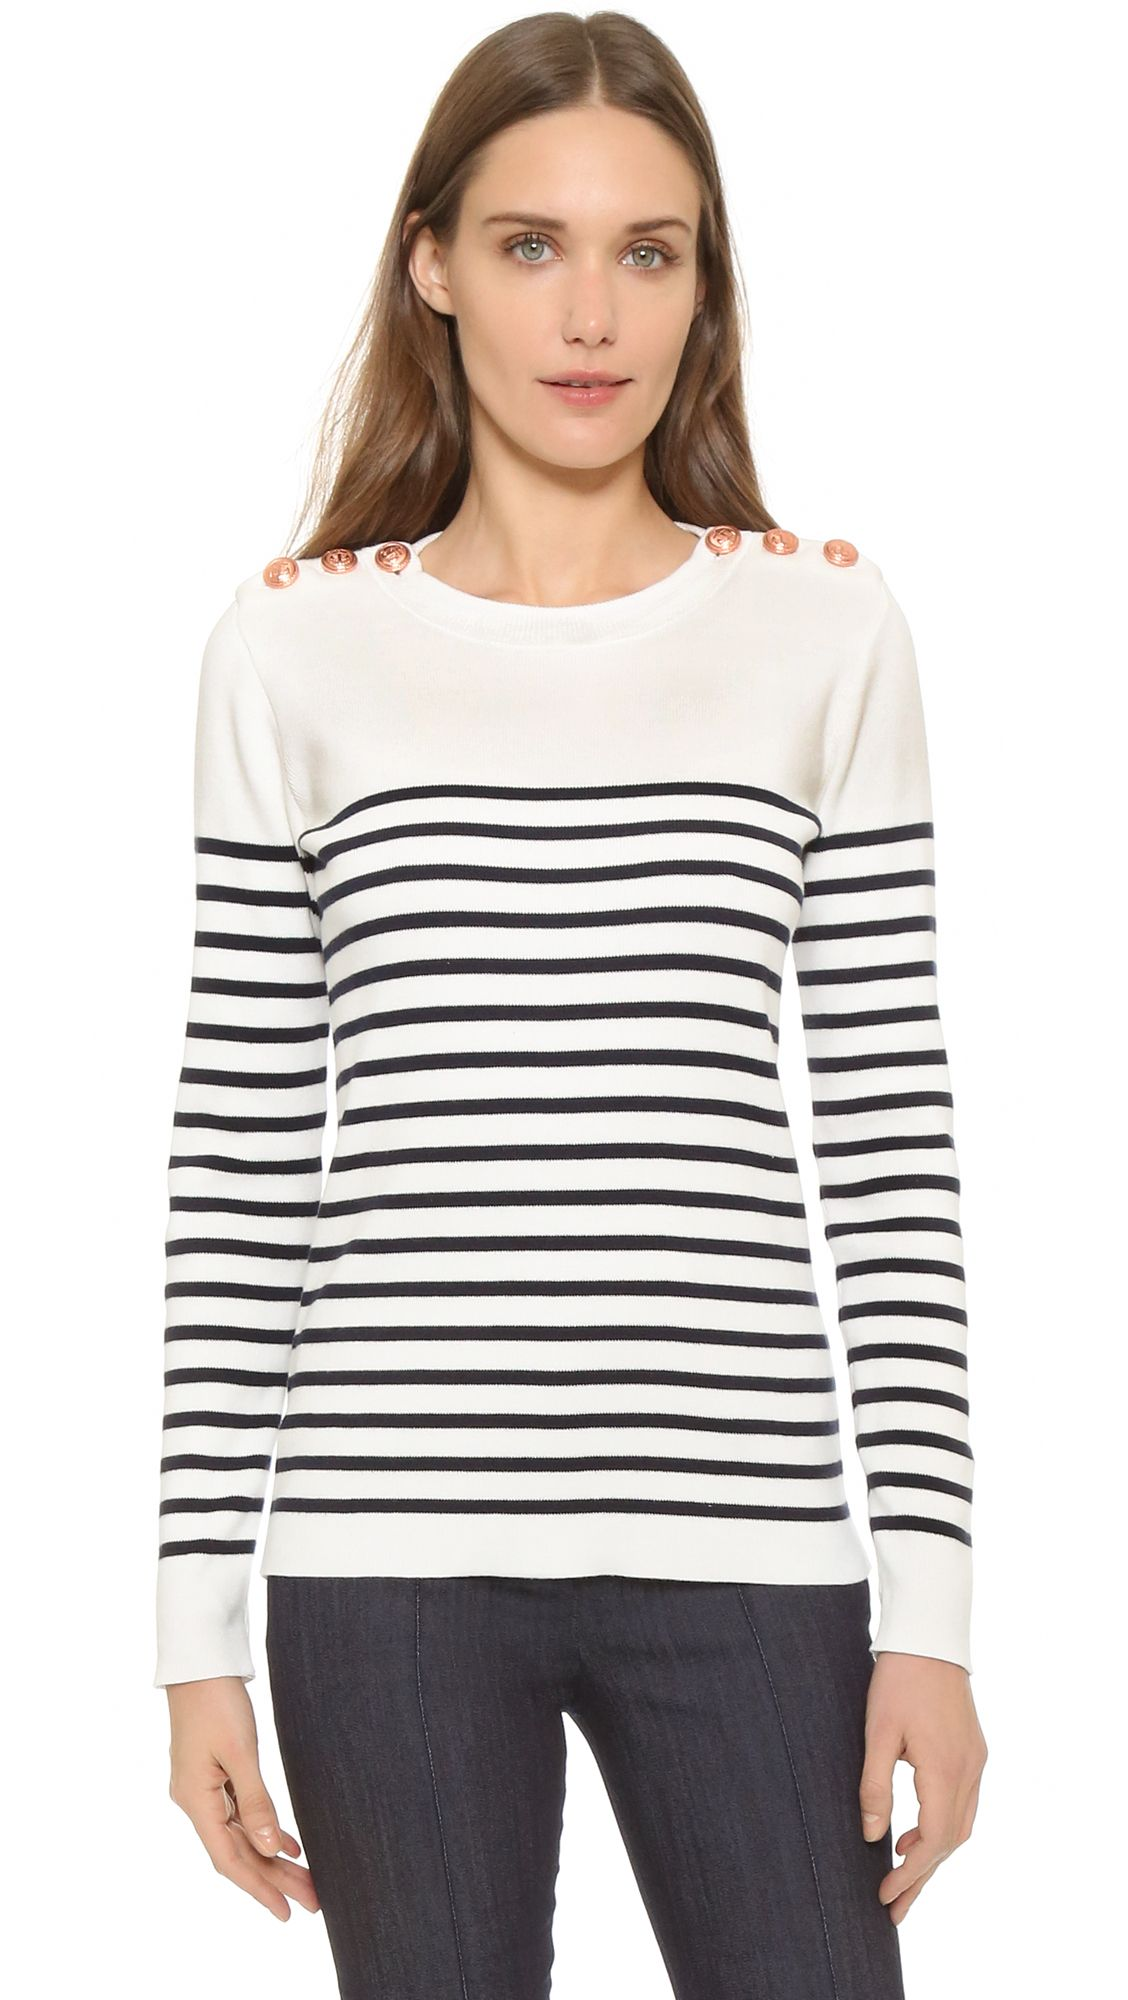 Petit Bateau Knit Striped Sweater - Lait/Smoking | SHOPBOP.COM saved by #ShoppingIS